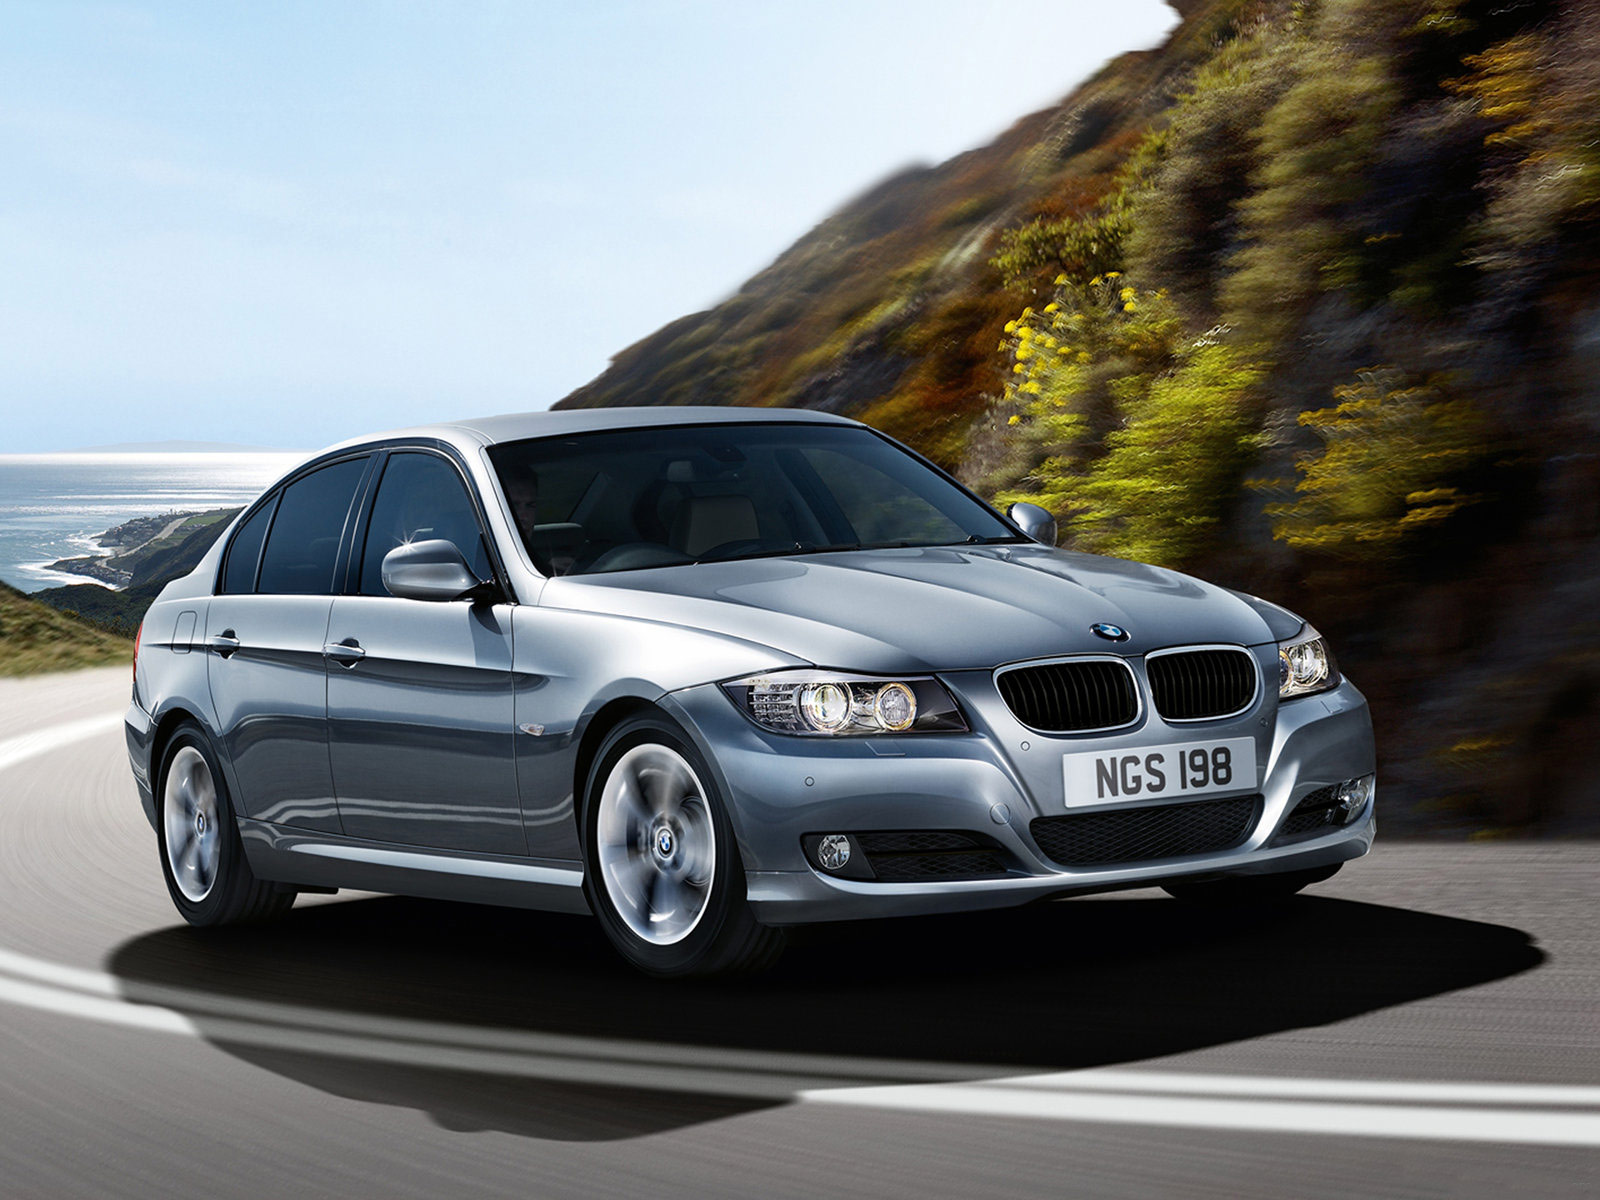 Bmw 320d 2010 Review Amazing Pictures And Images Look At The Car